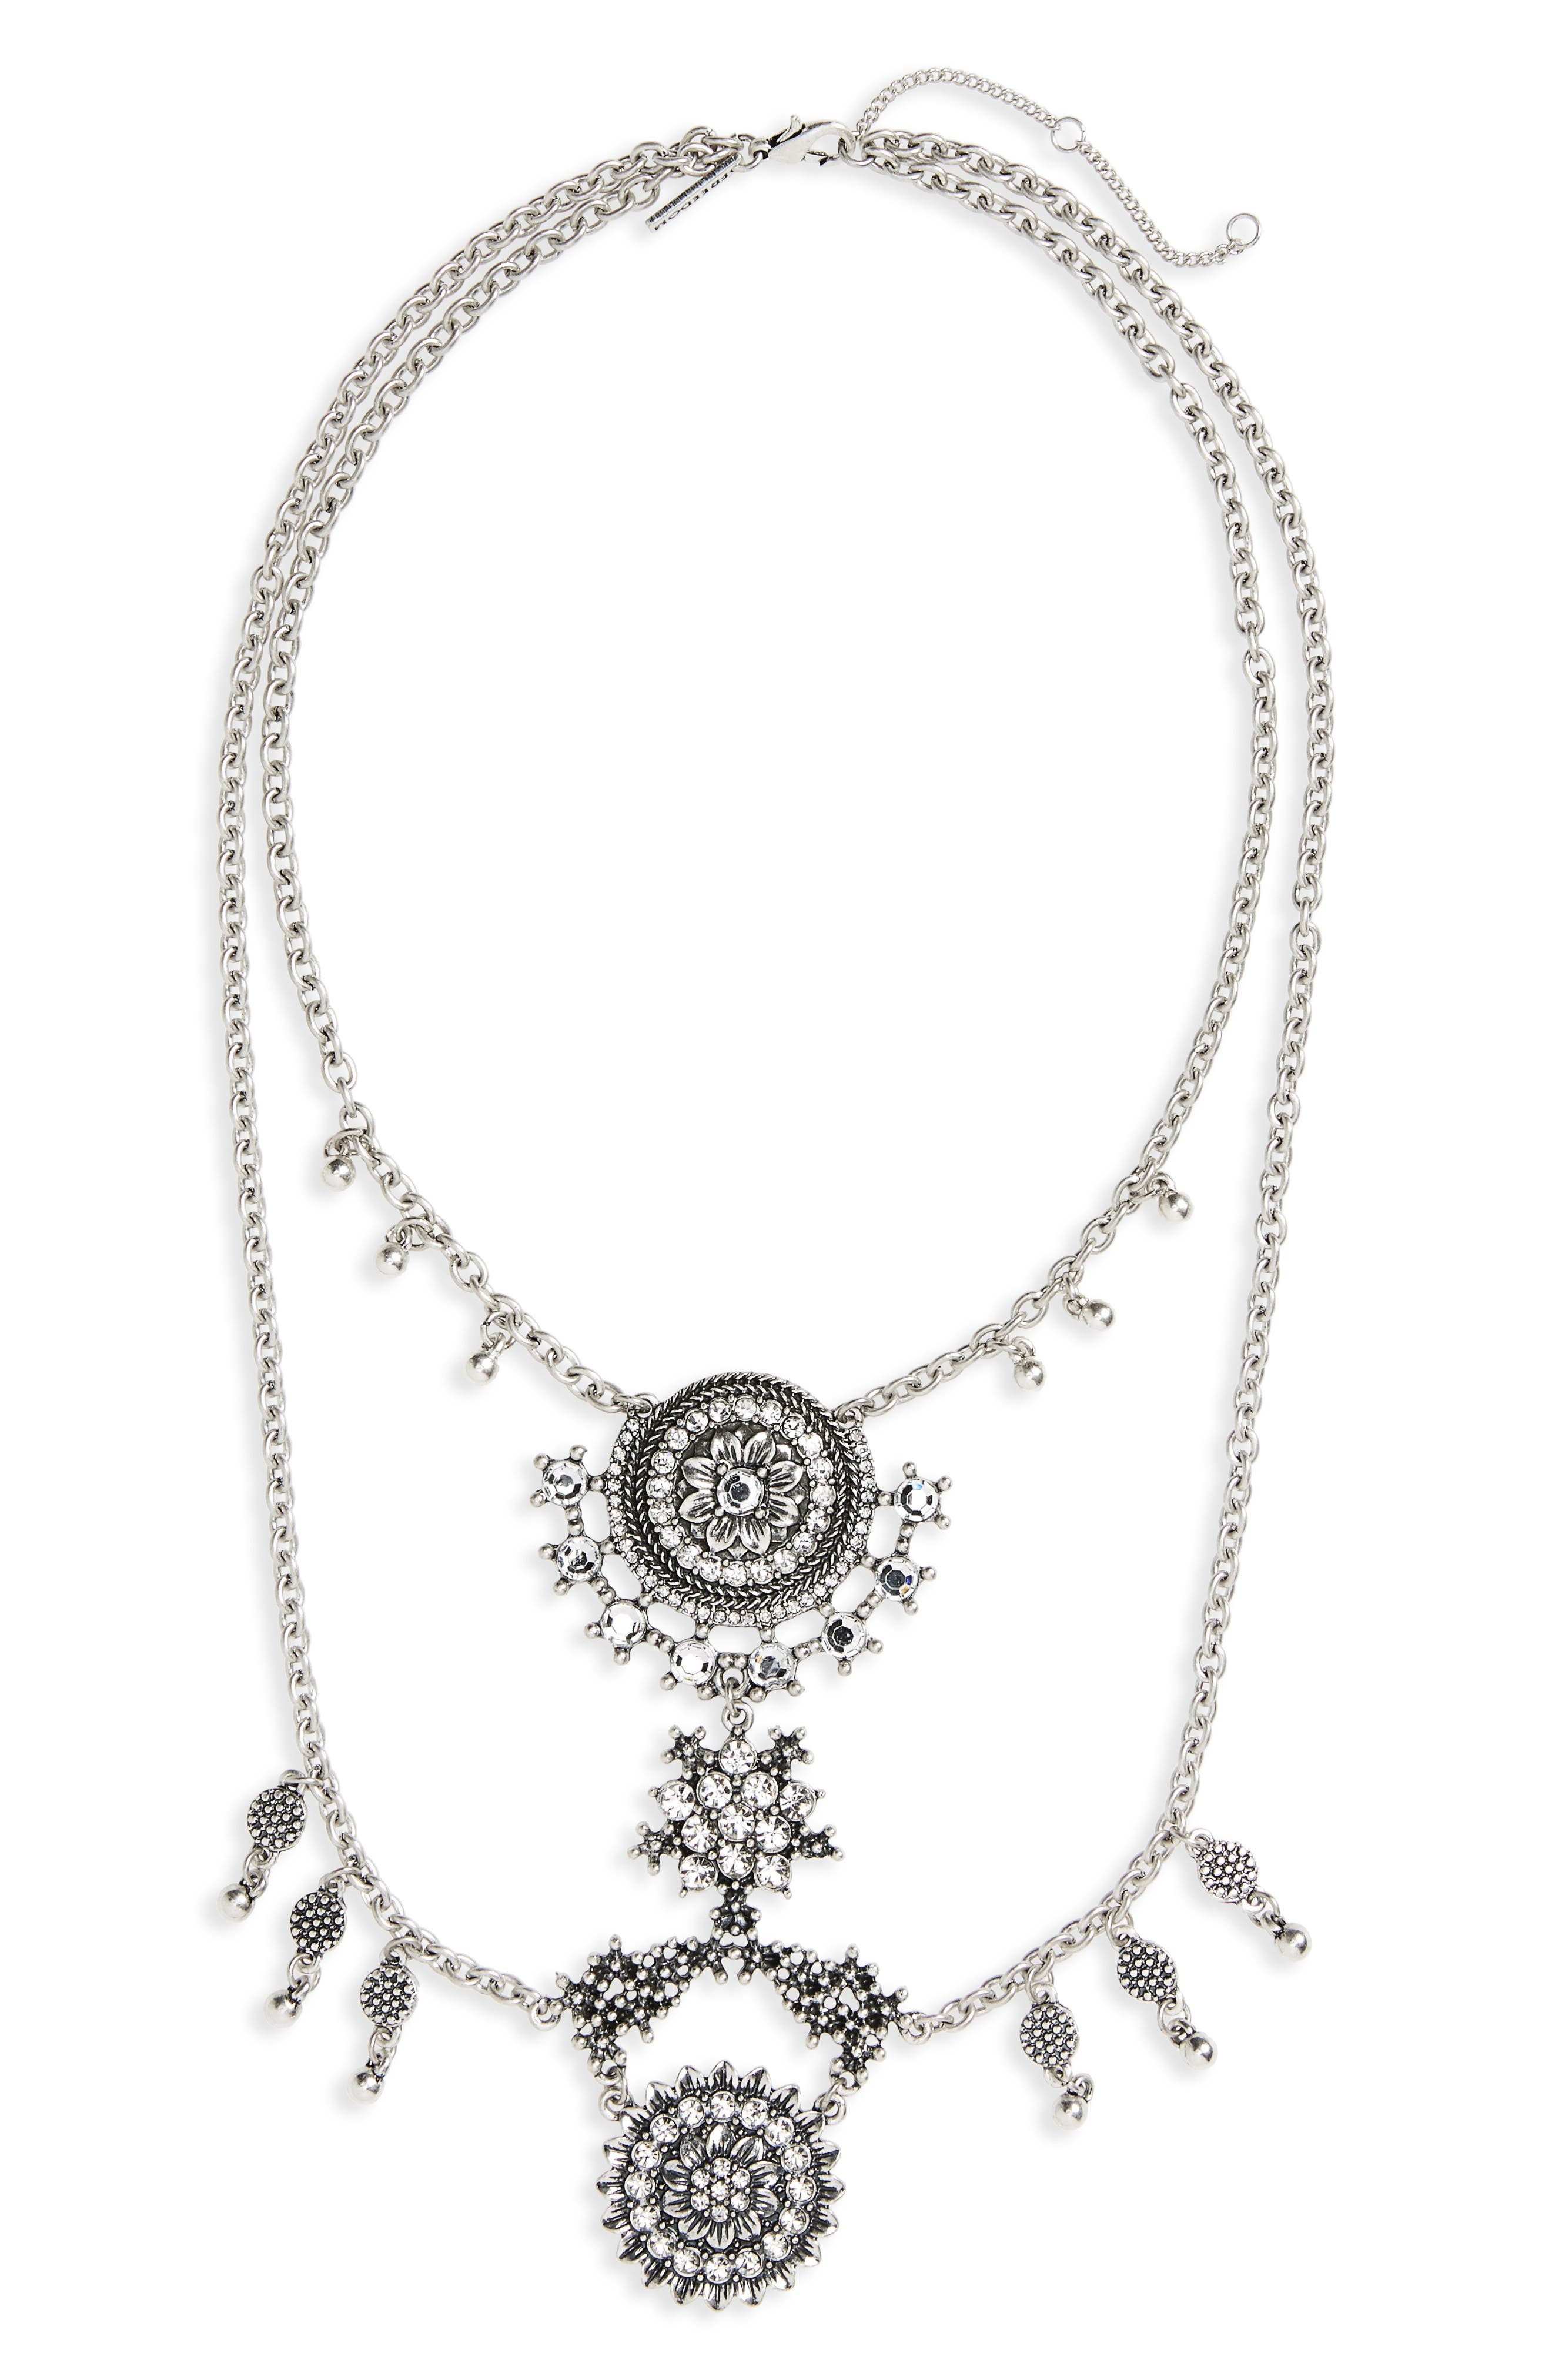 Topshop Crystal Statement Collar Necklace